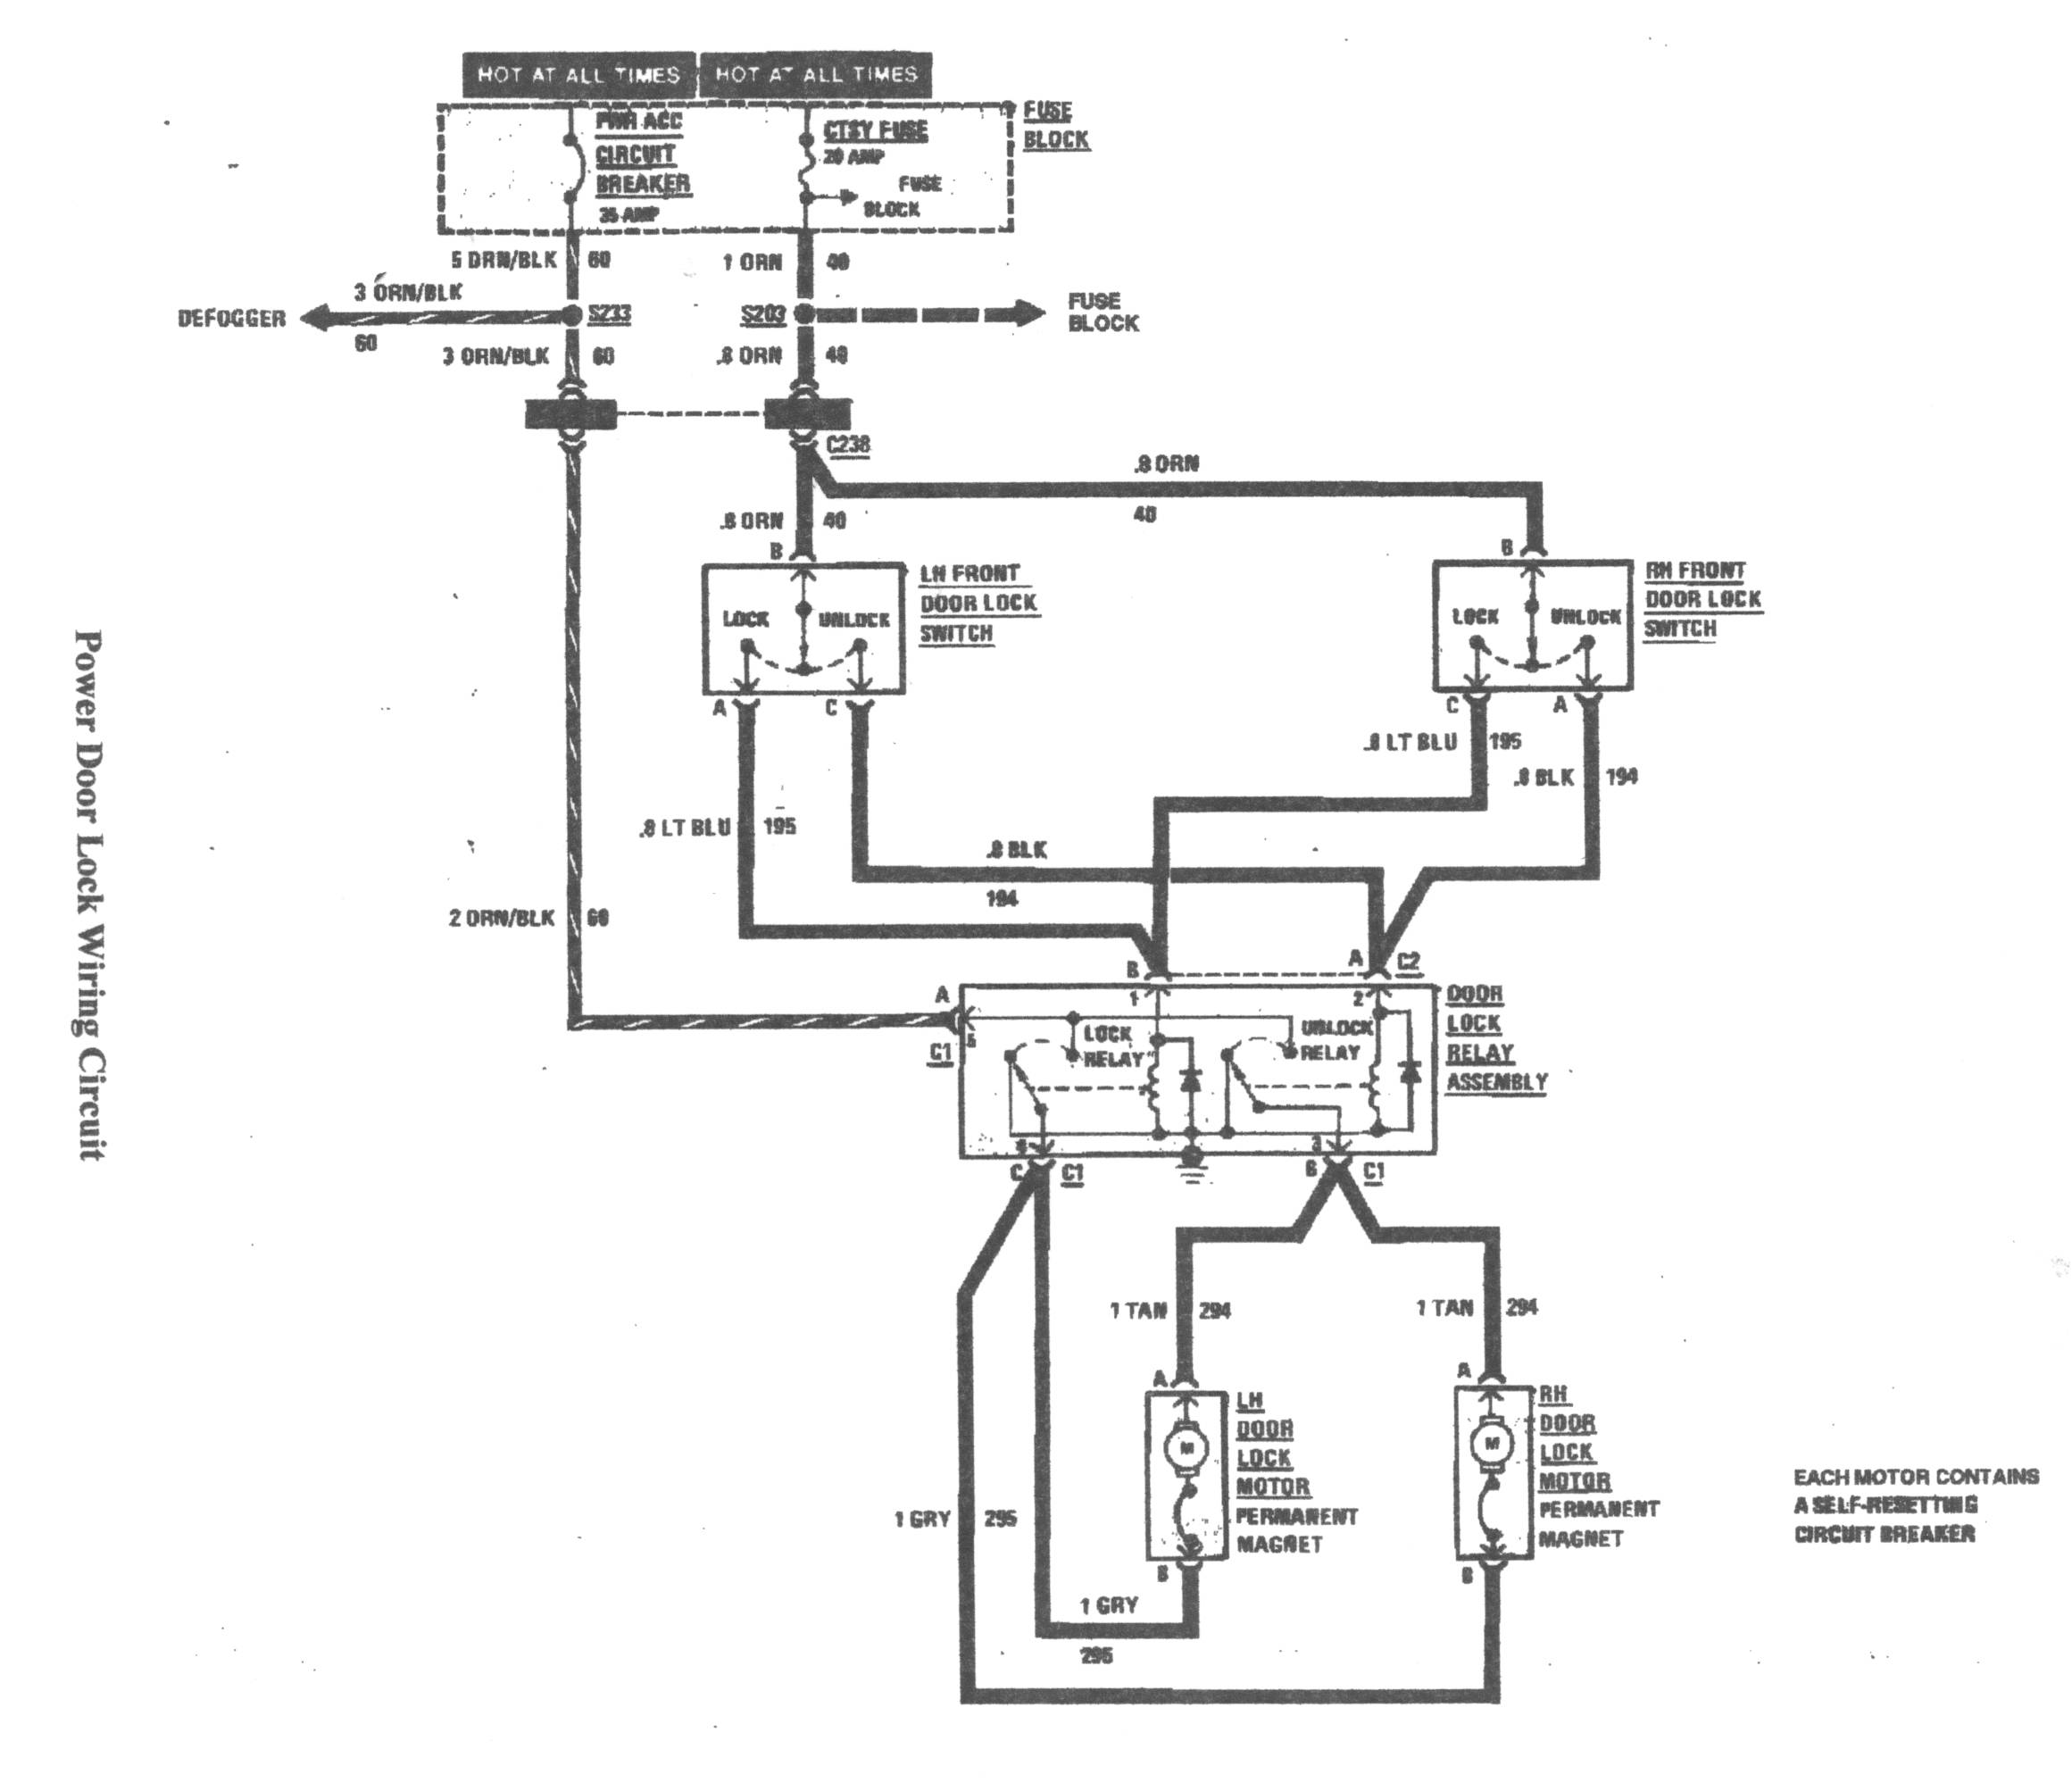 Fire Alarm To Pa Relay Wiring Diagrams